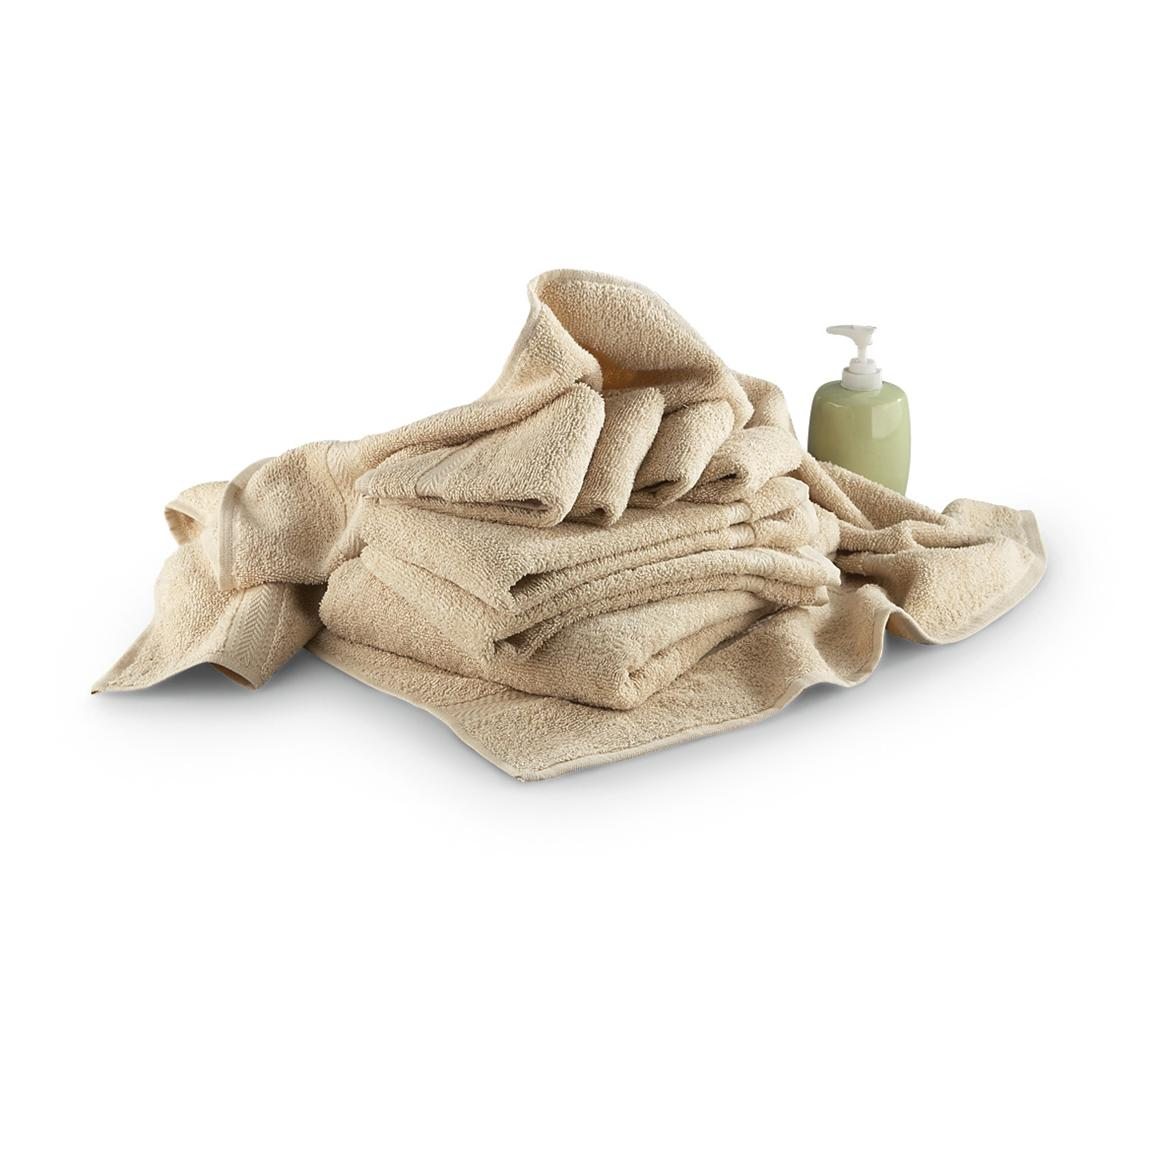 8-Pc. Bath Towel Set, Sand